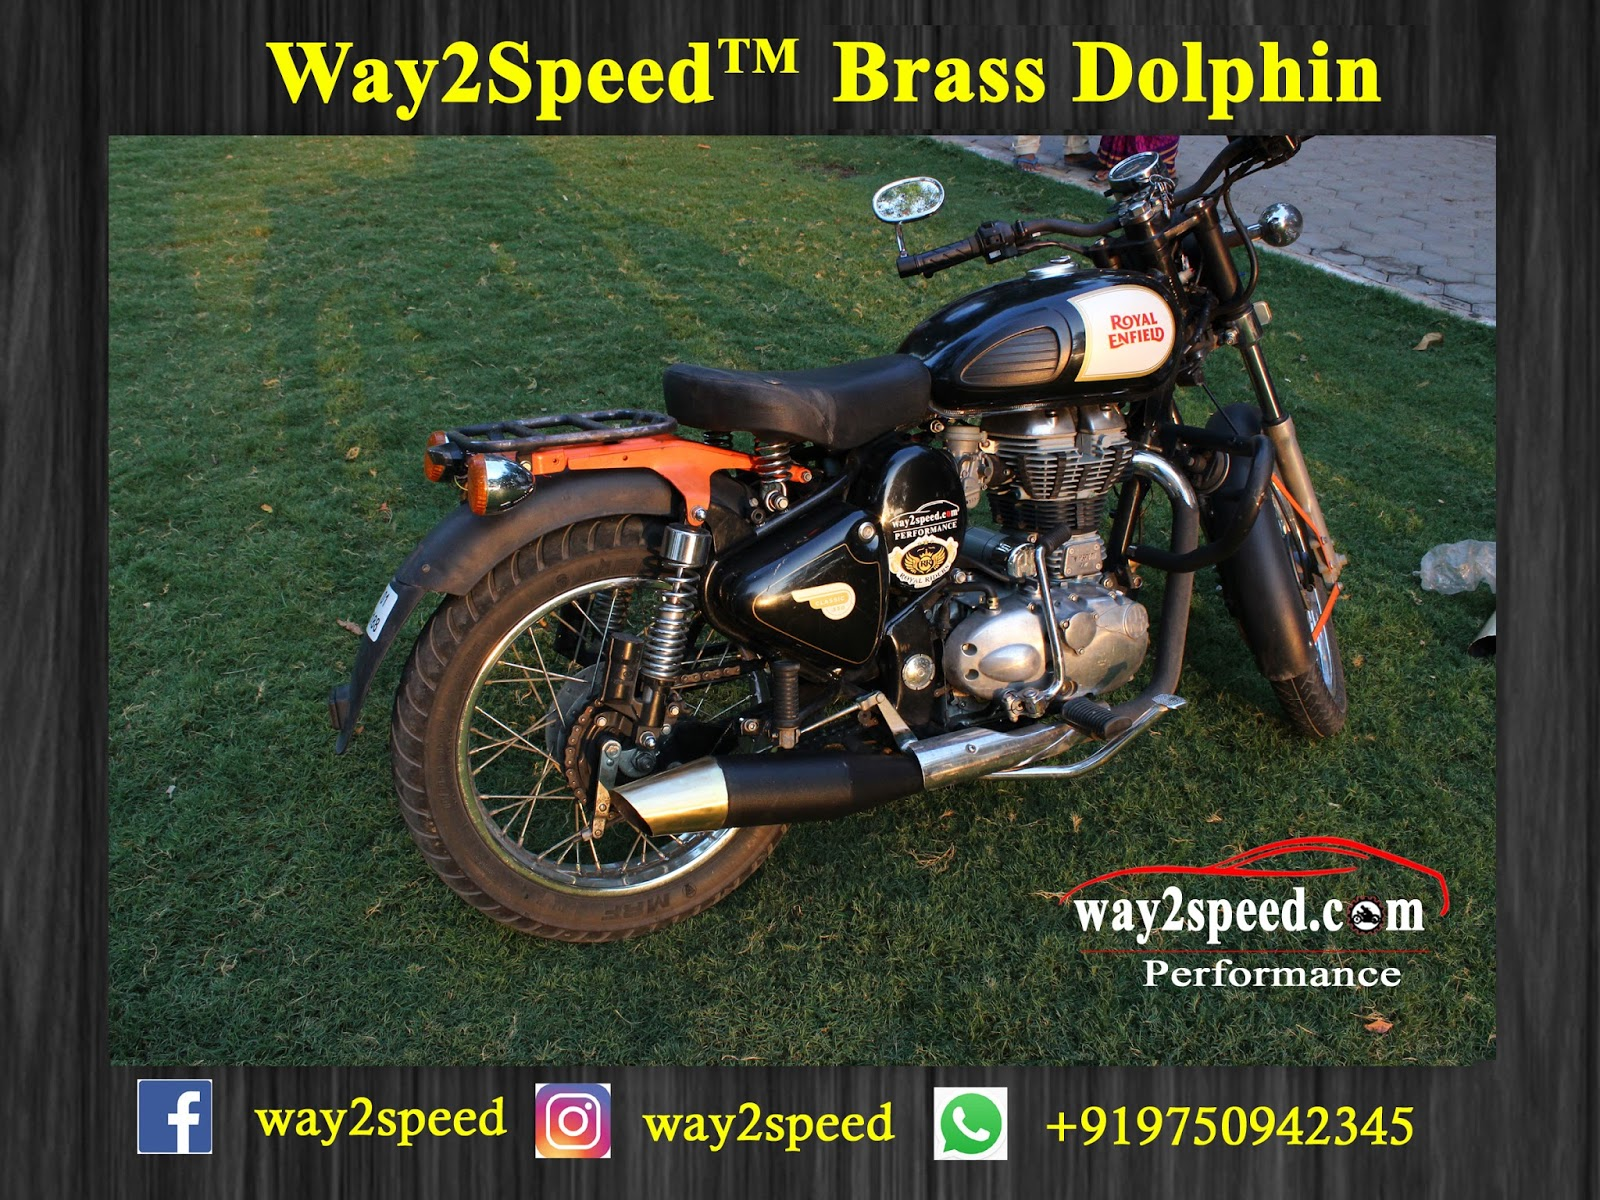 Royal Enfield Dolphin Silencer (brass) | way2speed Performance | royal enfield Silencer | royal enfield Exhaust | royal enfield classic 350 silencer sound | royal enfield glass wool silencer | Silencer for classic 350 | Best silencer for royal enfield | Bullet silencer sound increase  Royal Enfield Dolphin Silencer (brass) is a direct fit for Royal Enfield Bullet 350, Royal Enfield Classic 350, Royal Enfield Thunderbird 350, Royal Enfield Bullet 500, Royal Enfield Classic 500, Royal Enfield Thunderbird 500, Royal Enfield Continental GT